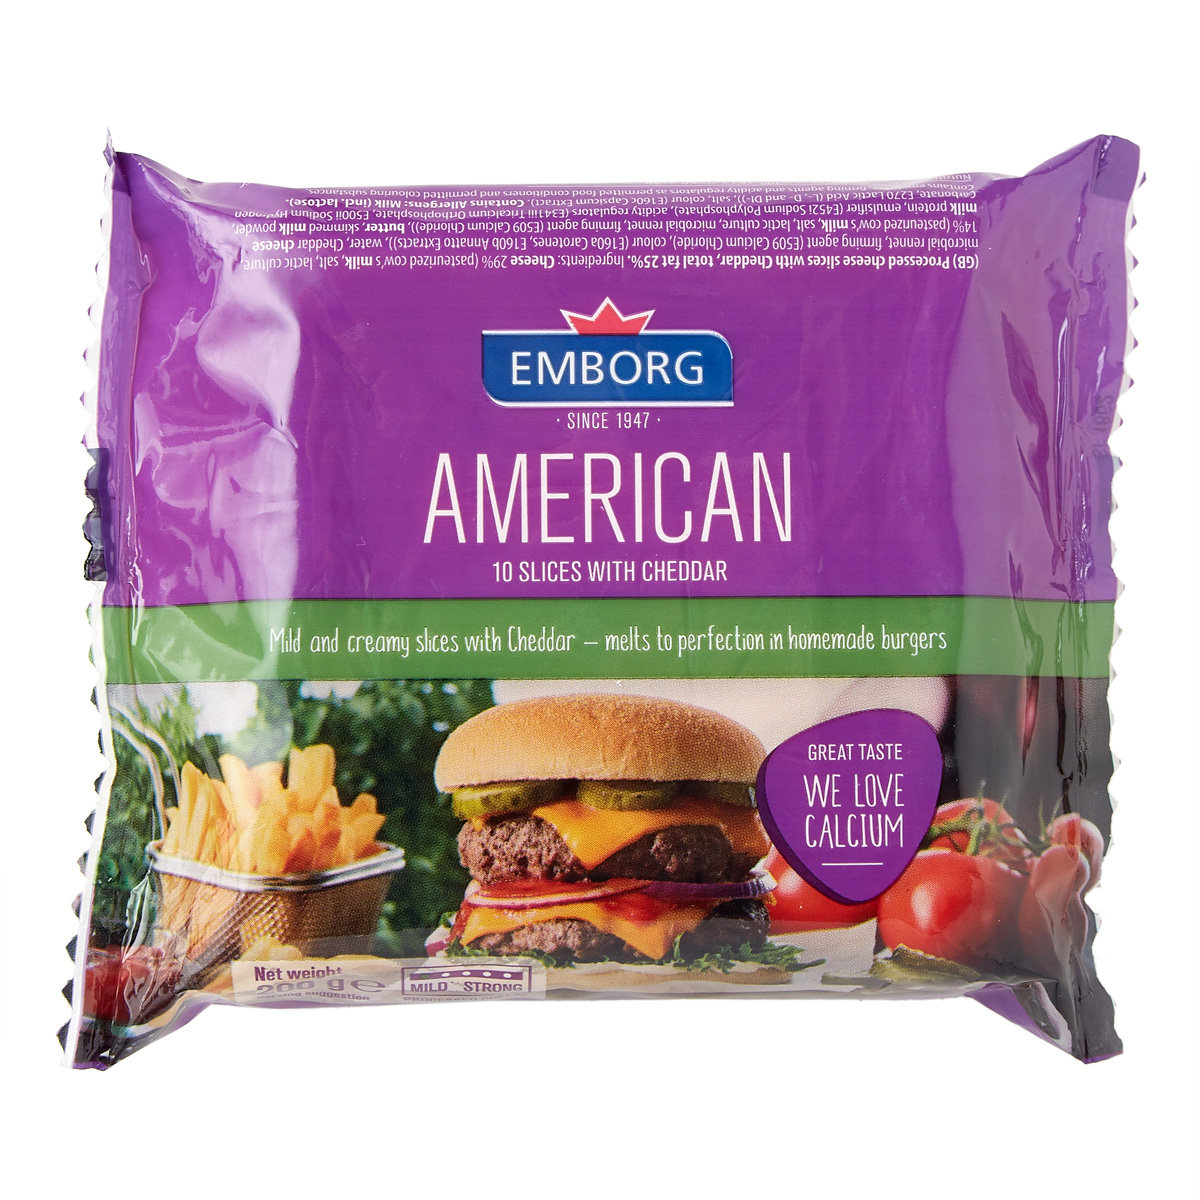 American Cheddar Processed Sliced Cheese (chilled)